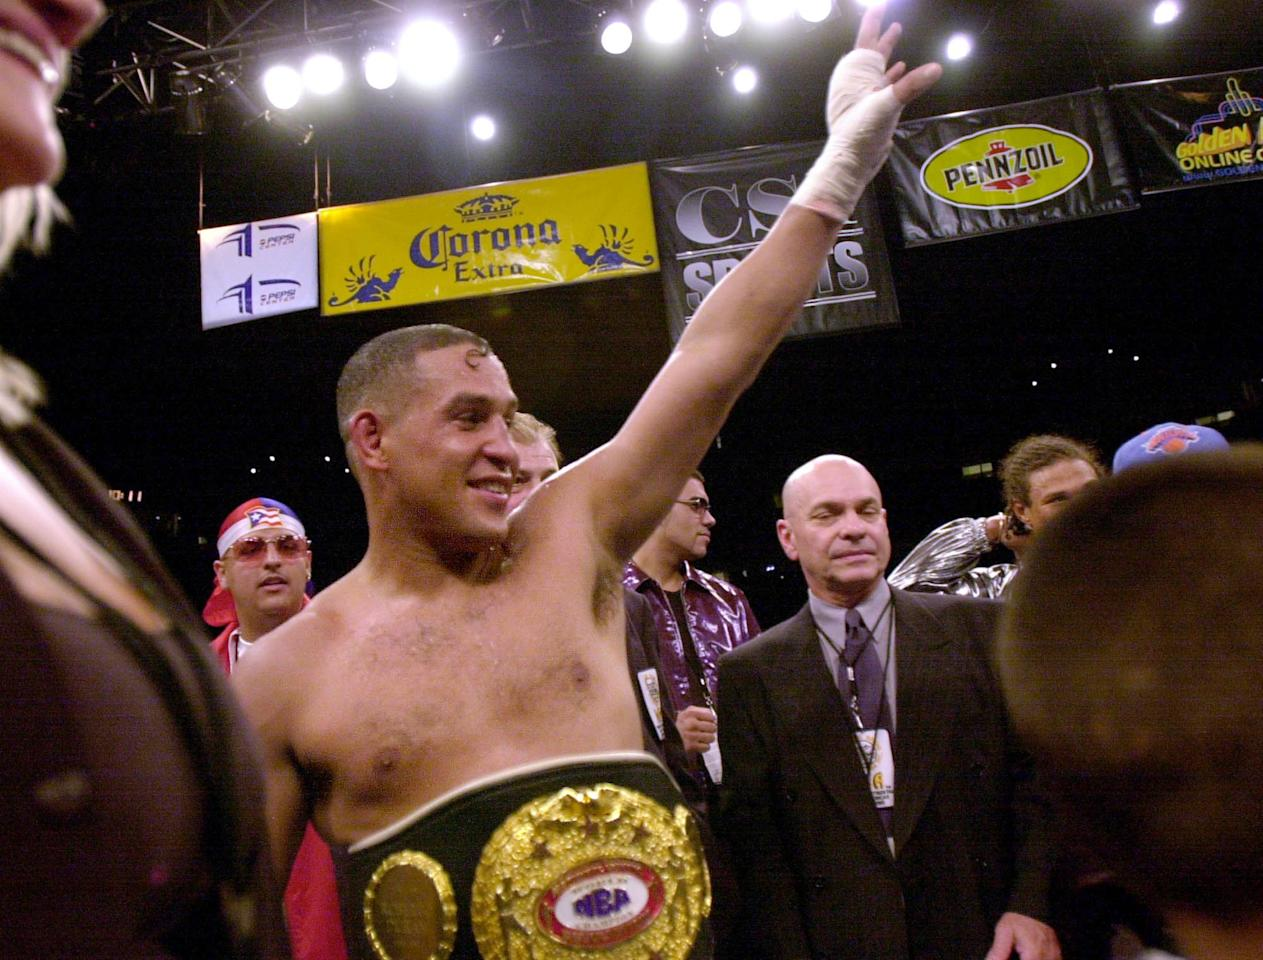 "(FILES)Hector Camacho from Puerto Rico waves to the crowd, wearing the NBA Super Middle Weight Championship belt, after winning over Roberto Duran from Panama by decision in 12 rounds at the Pepsi Center in this July 14, 2001 photo in Denver, Colorado.  Former three time world boxing champion Hector ""Macho"" Camacho was seriously injured the evening of November 20, 2012 after being shot in the neck in Puerto Rico, local media reported. Camacho, 50, was being driven in a car when he was hit in the head by gunshot from another vehicle around 7:00 pm local time, the Primera Hora de Puerto Rico newspaper reported on its website. Ernesto Torres, director of the Centro Medico de Rio Piedras, was cautious about Camacho's chances of survival, saying that a bullet had fractured two bones in his neck. ""It appears the bullet struck a bone and was deflected without going into the brain,"" Torres told the newspaper. An earlier report said a single bullet struck the left side of Camacho's jaw.  AFP PHOTO MARK LEFFINGWELLMARK LEFFINGWELL/AFP/Getty Images"